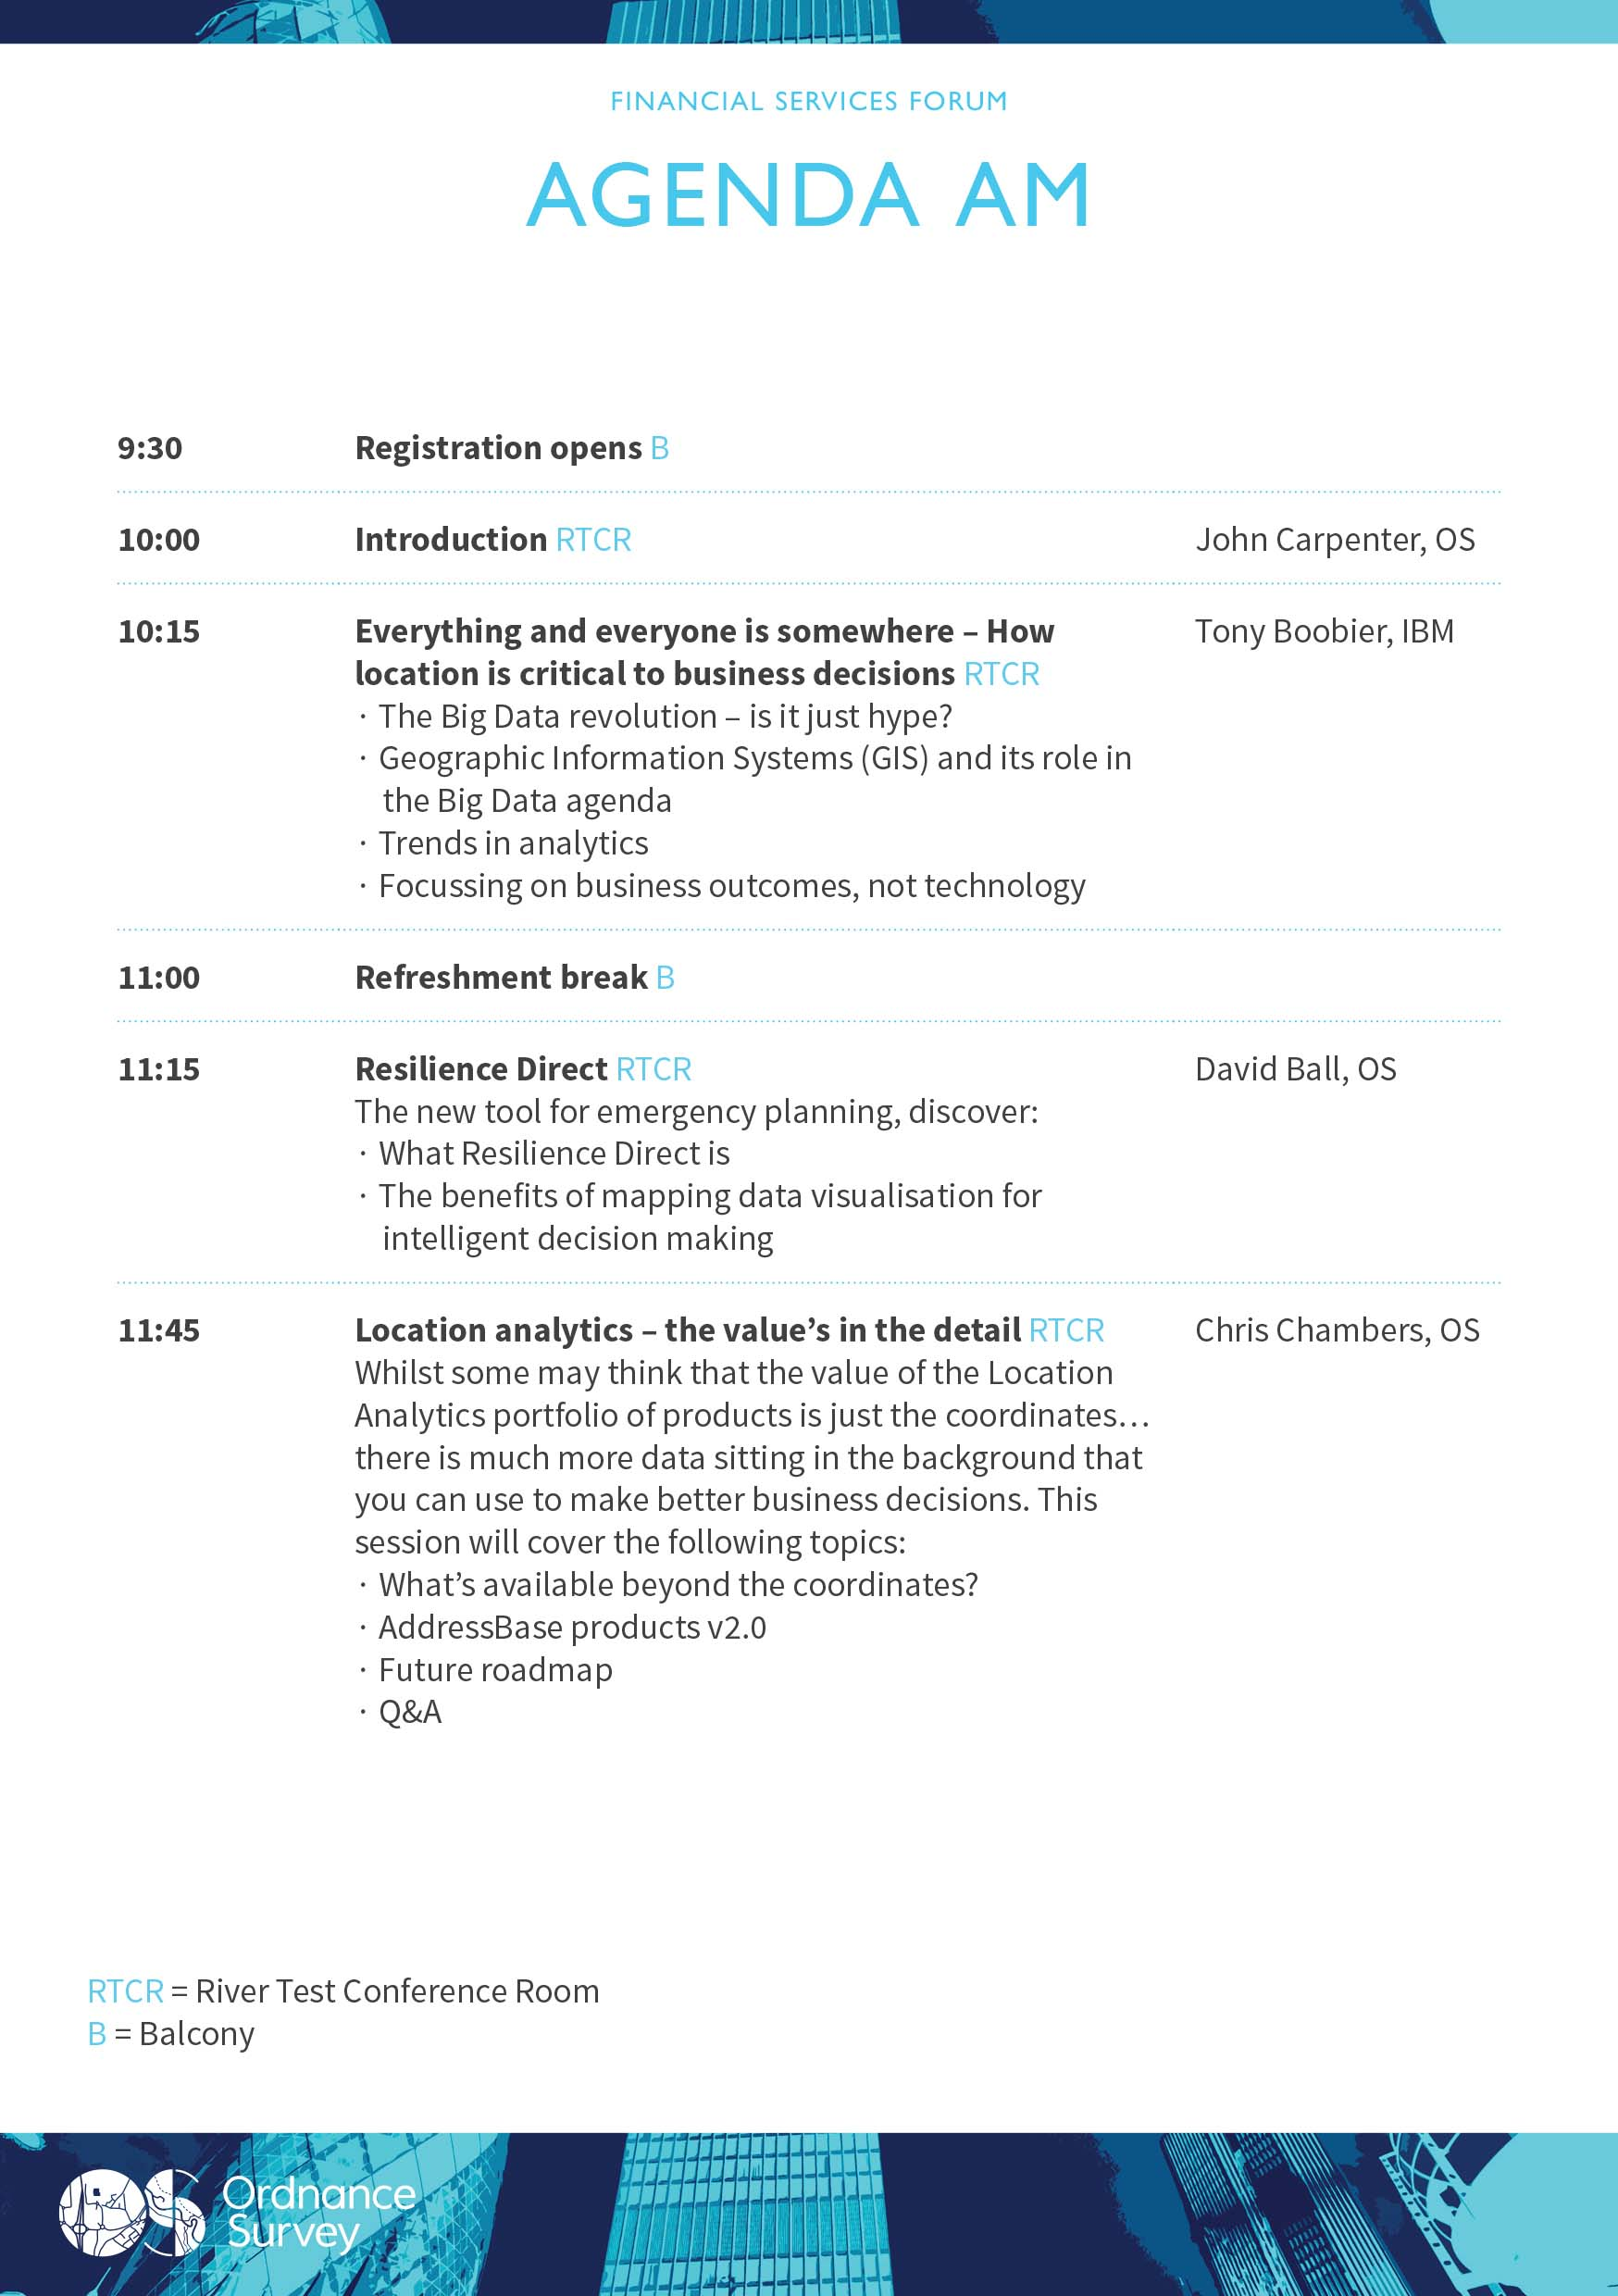 Financial Services Forum Morning Agenda